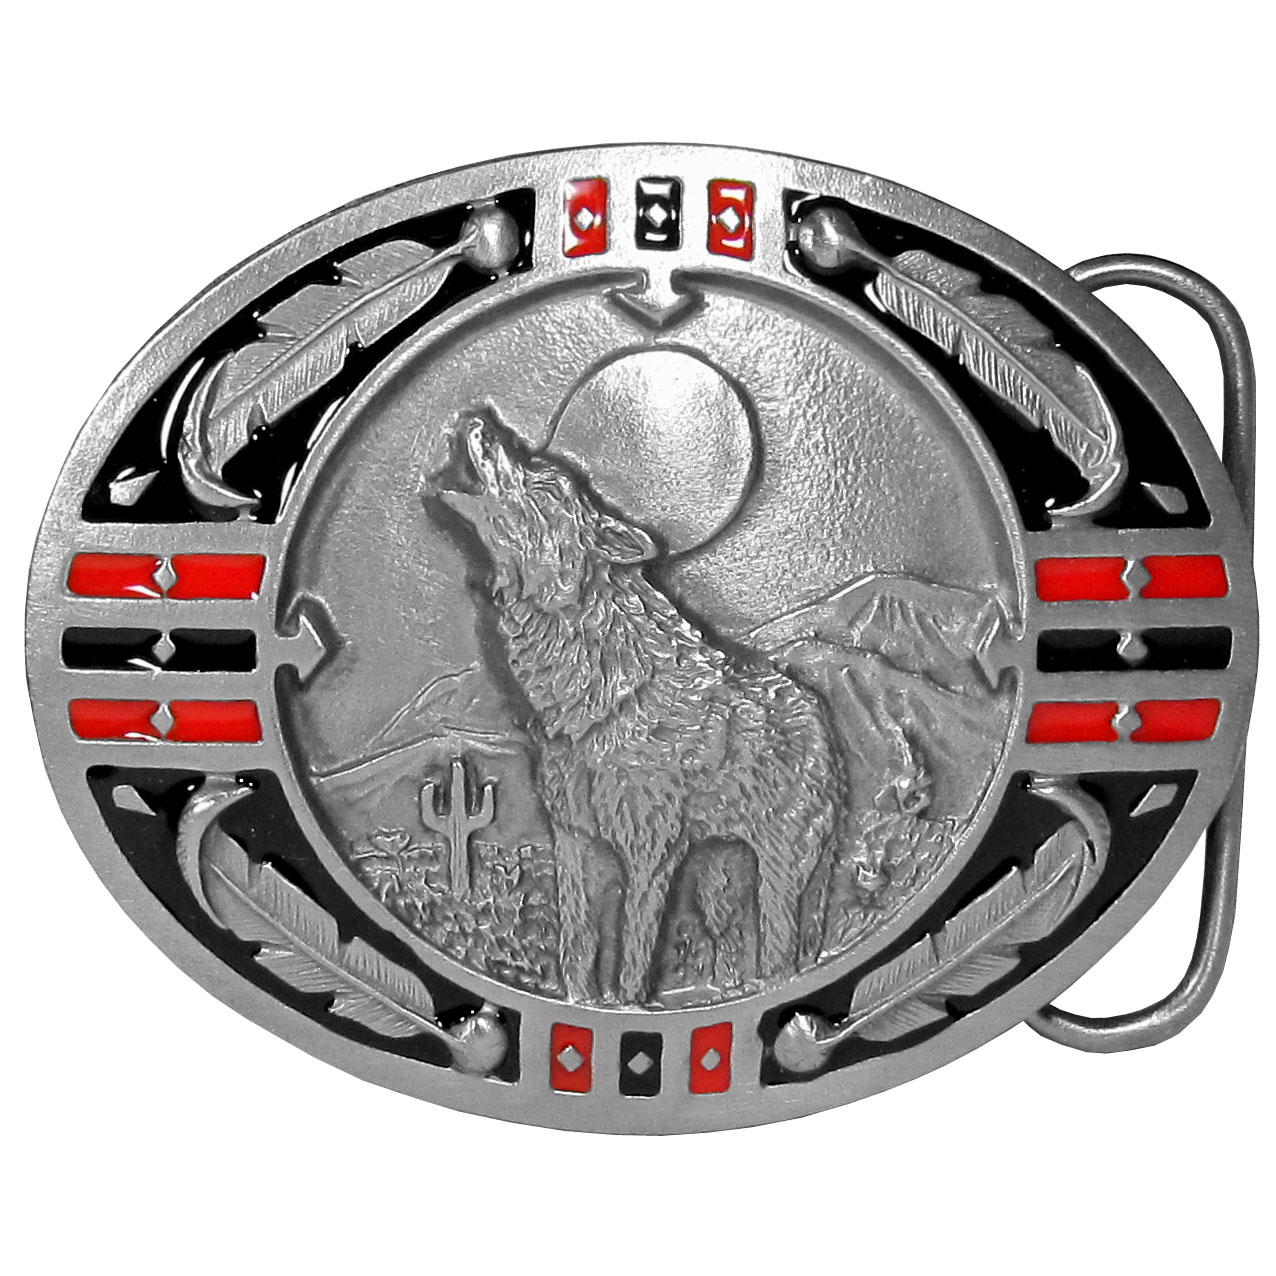 Wolf Enameled Belt Buckle - This finely sculpted and hand enameled belt buckle contains exceptional 3D detailing. Siskiyou's unique buckle designs often become collector's items and are unequaled with the best craftsmanship.